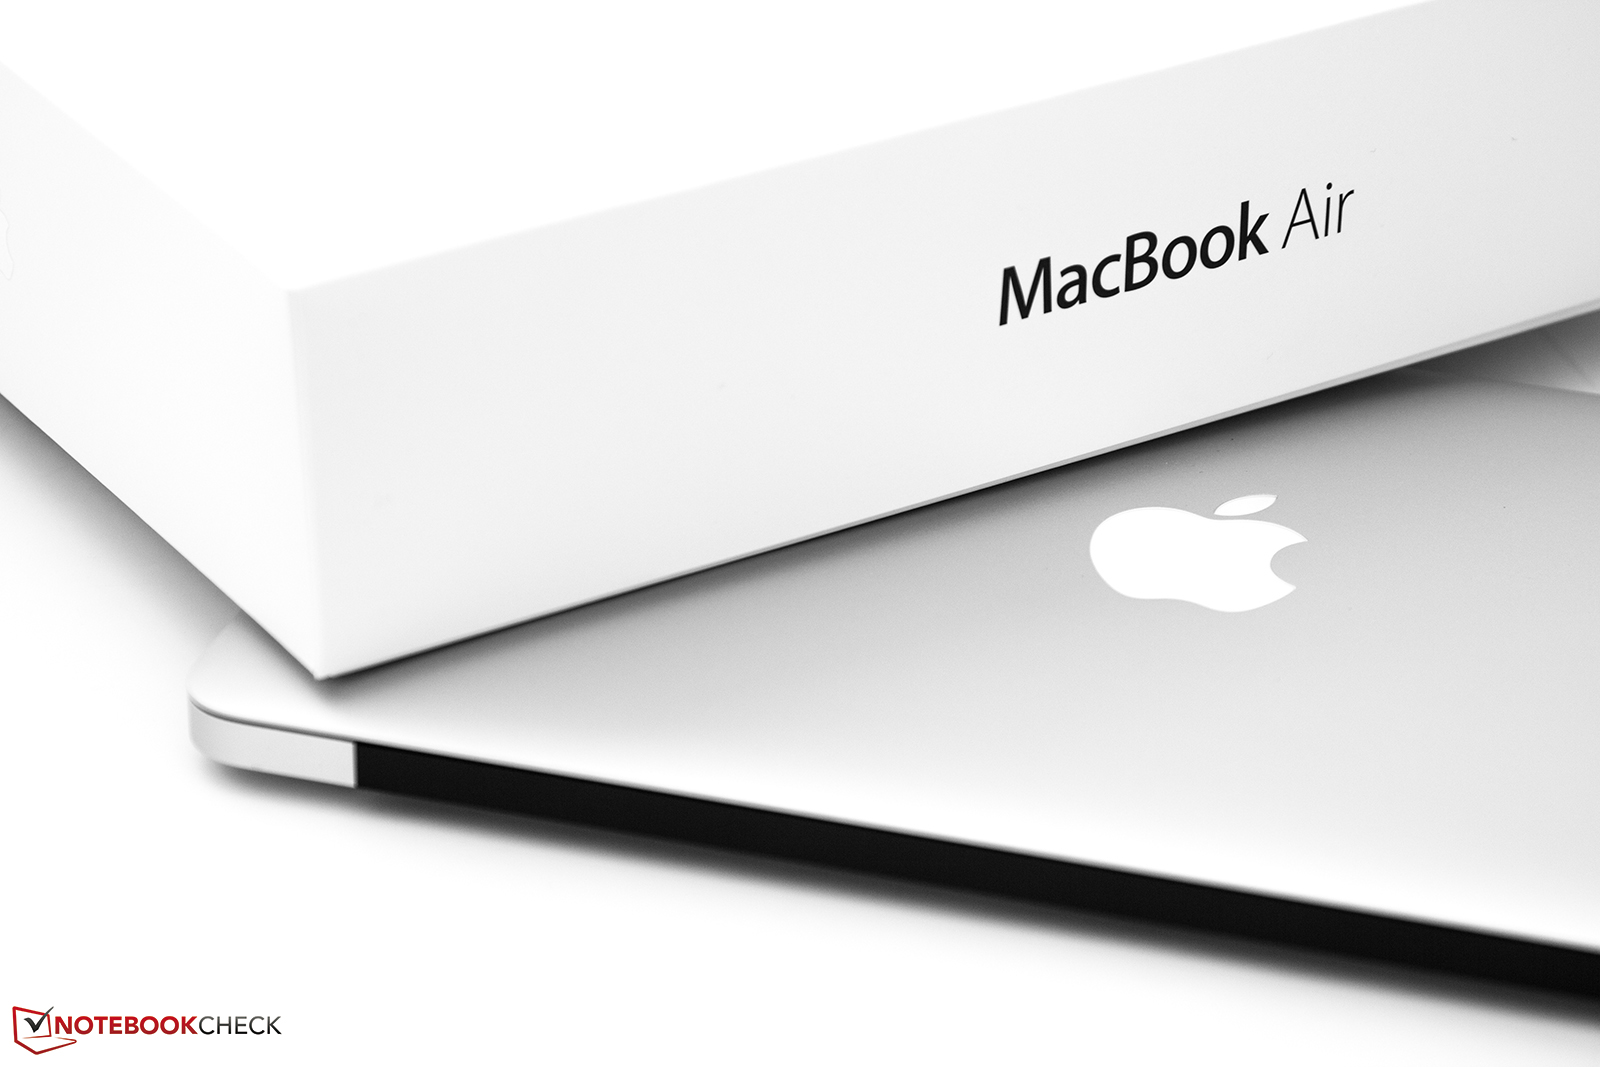 review apple macbook air 11 inch mid 2013 1 7 ghz 256 gb. Black Bedroom Furniture Sets. Home Design Ideas